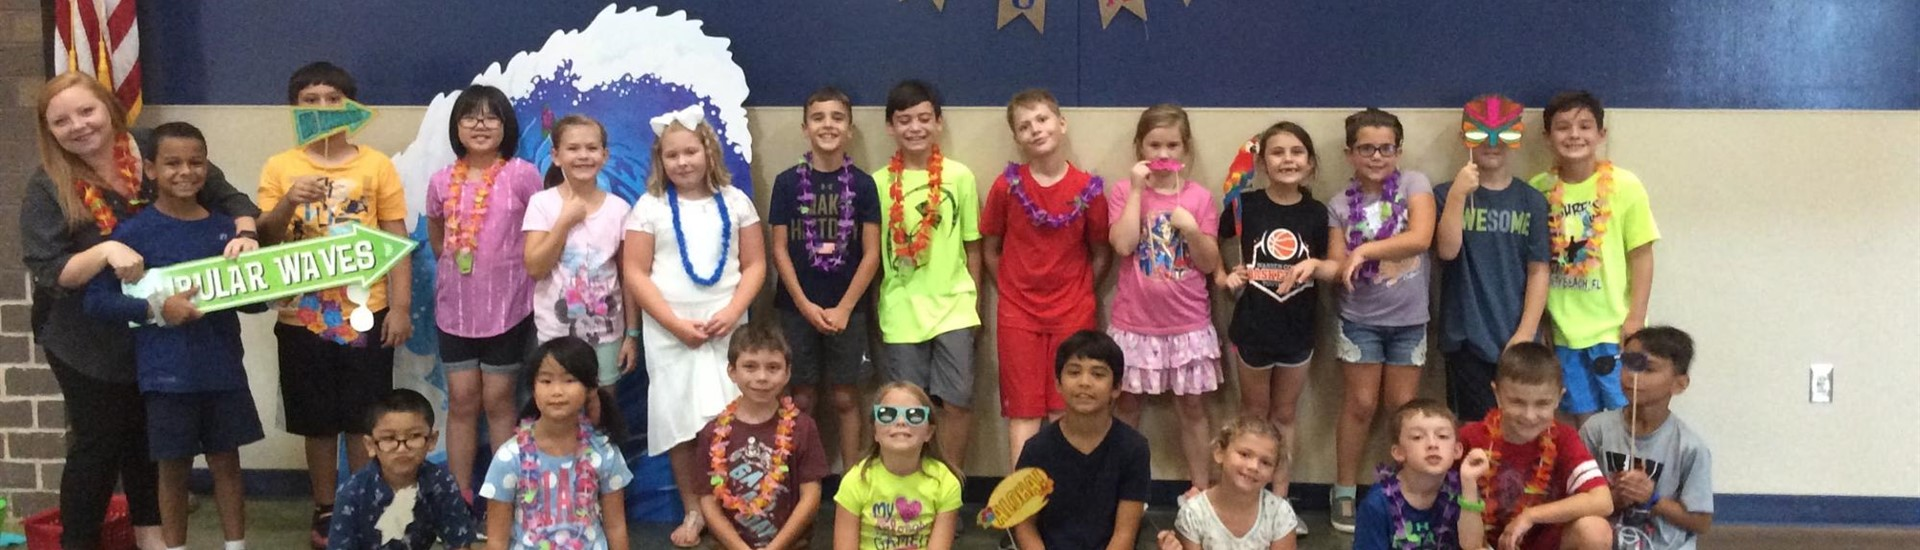 Ms. McLean's Class of 2028!